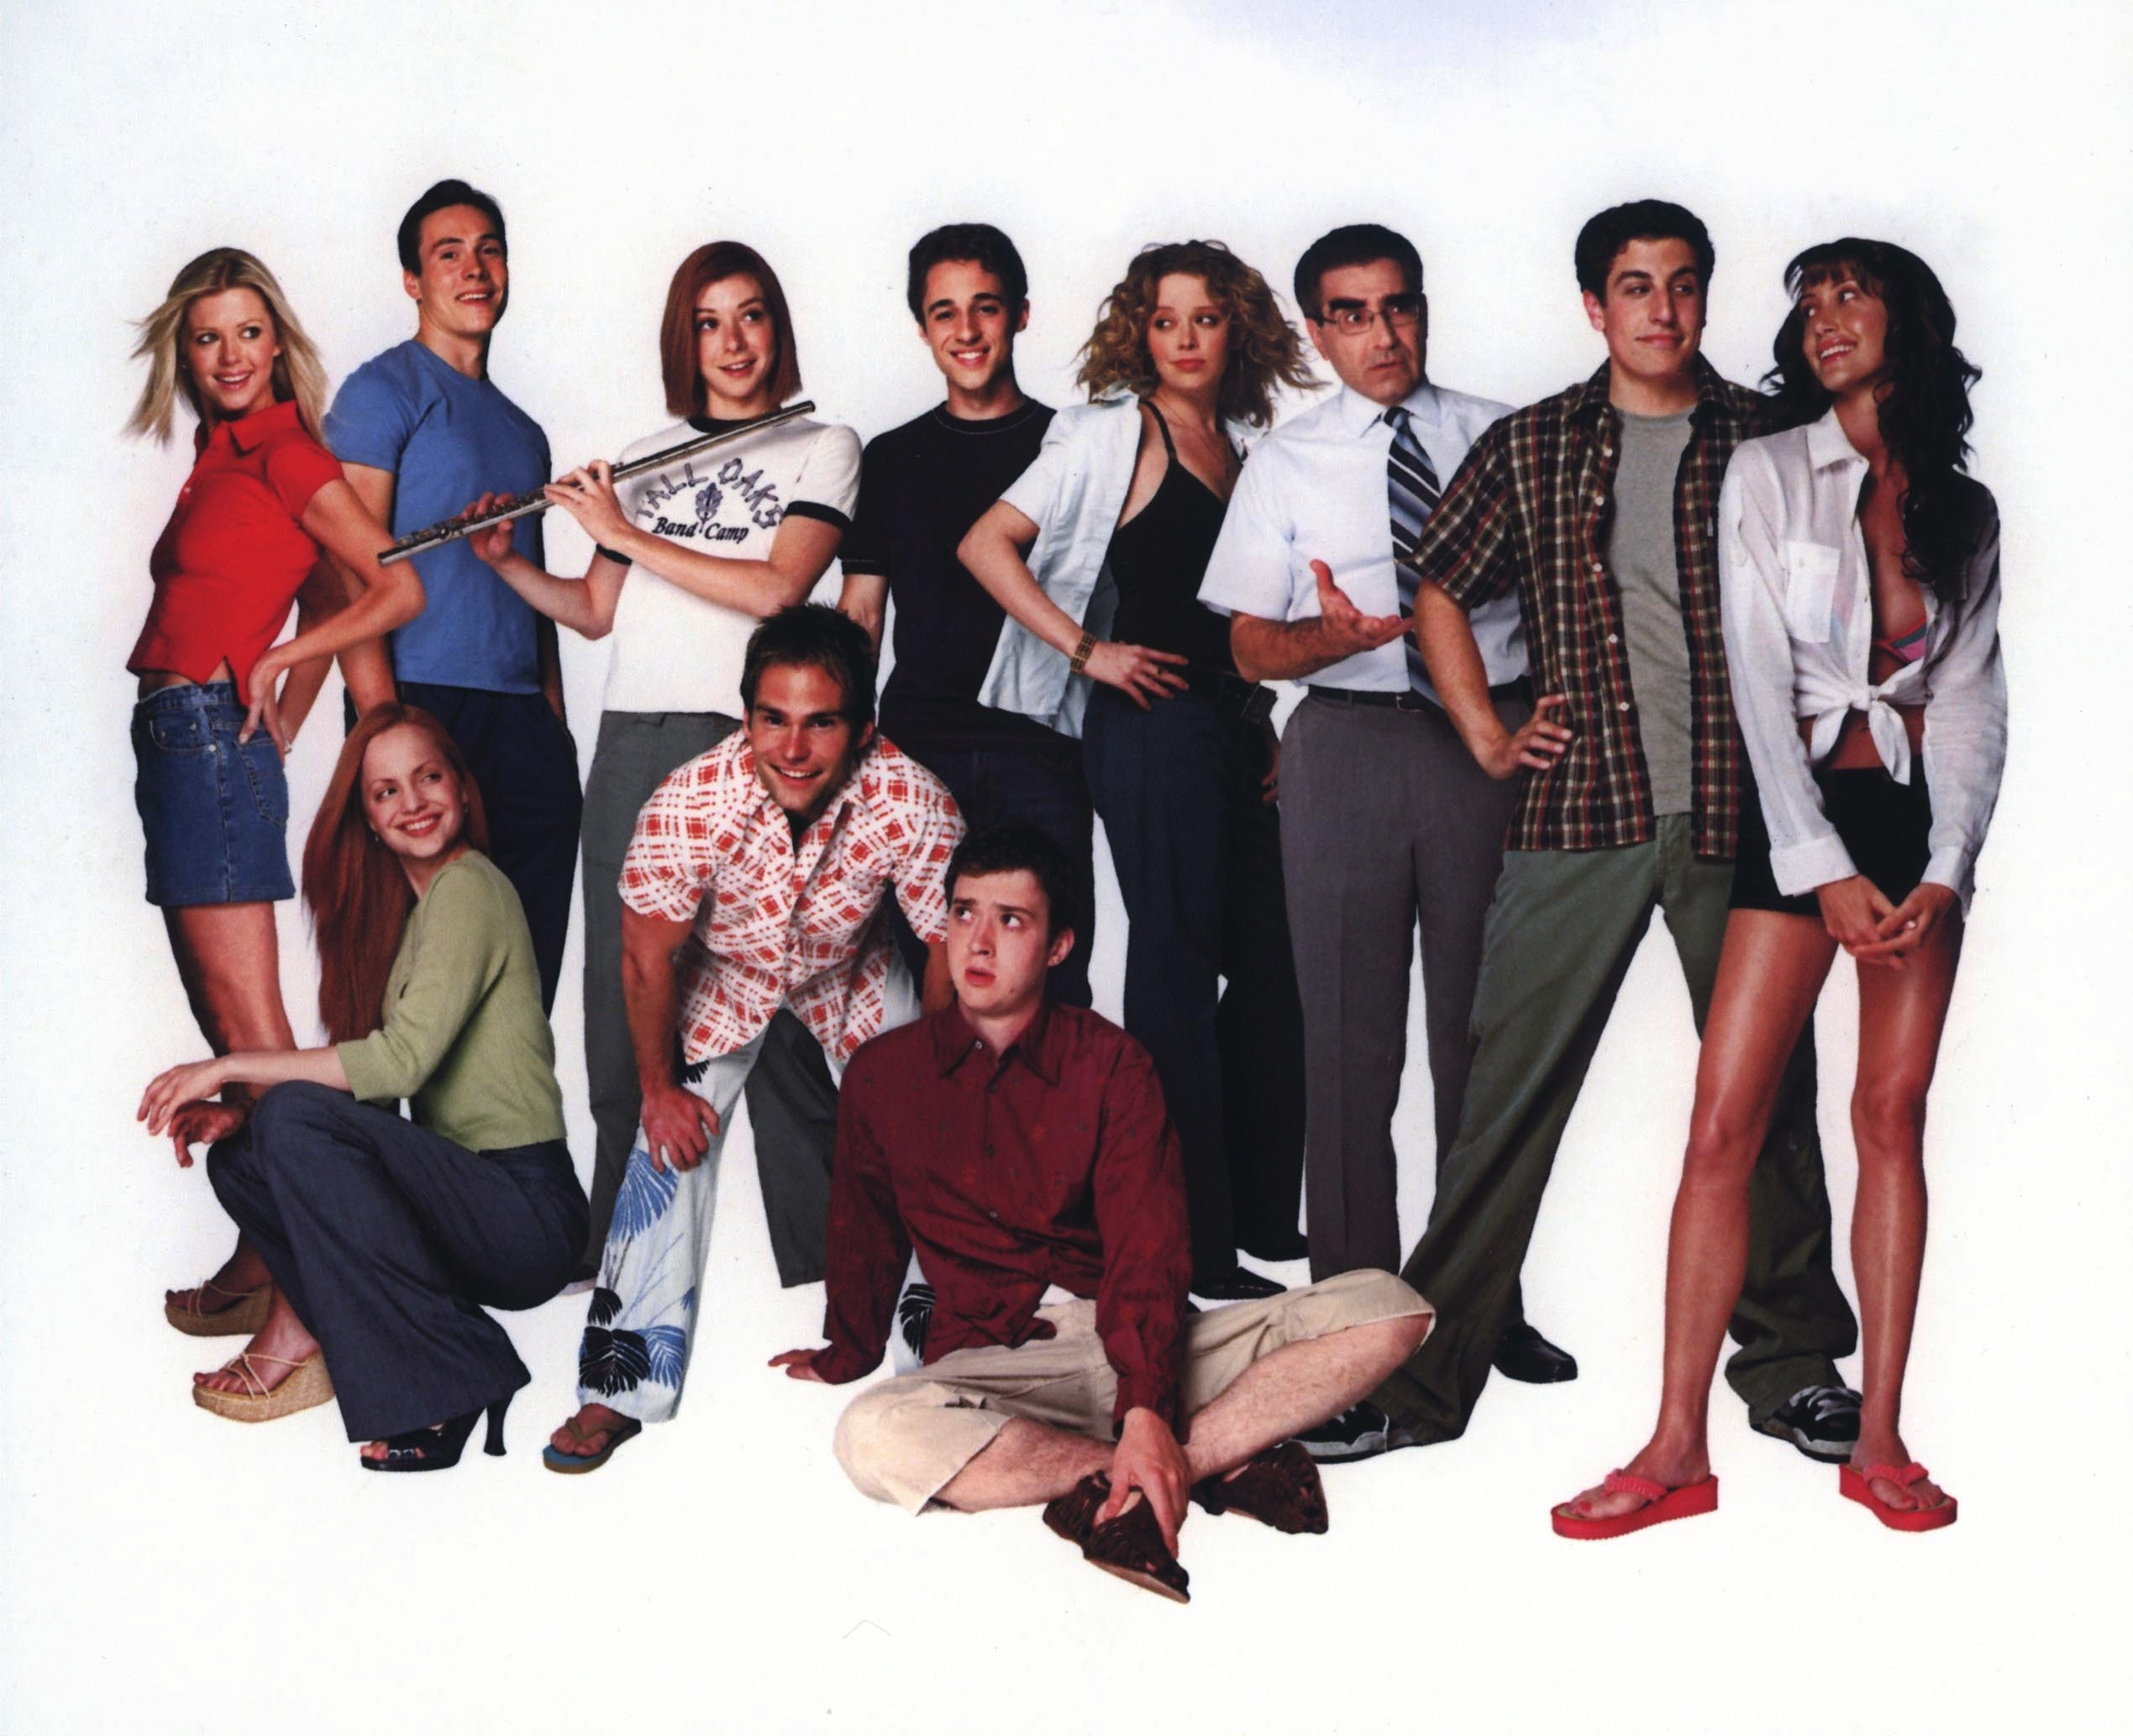 American Pie Campamento De Bandas what do the cast of 'american pie' look like now? it's been